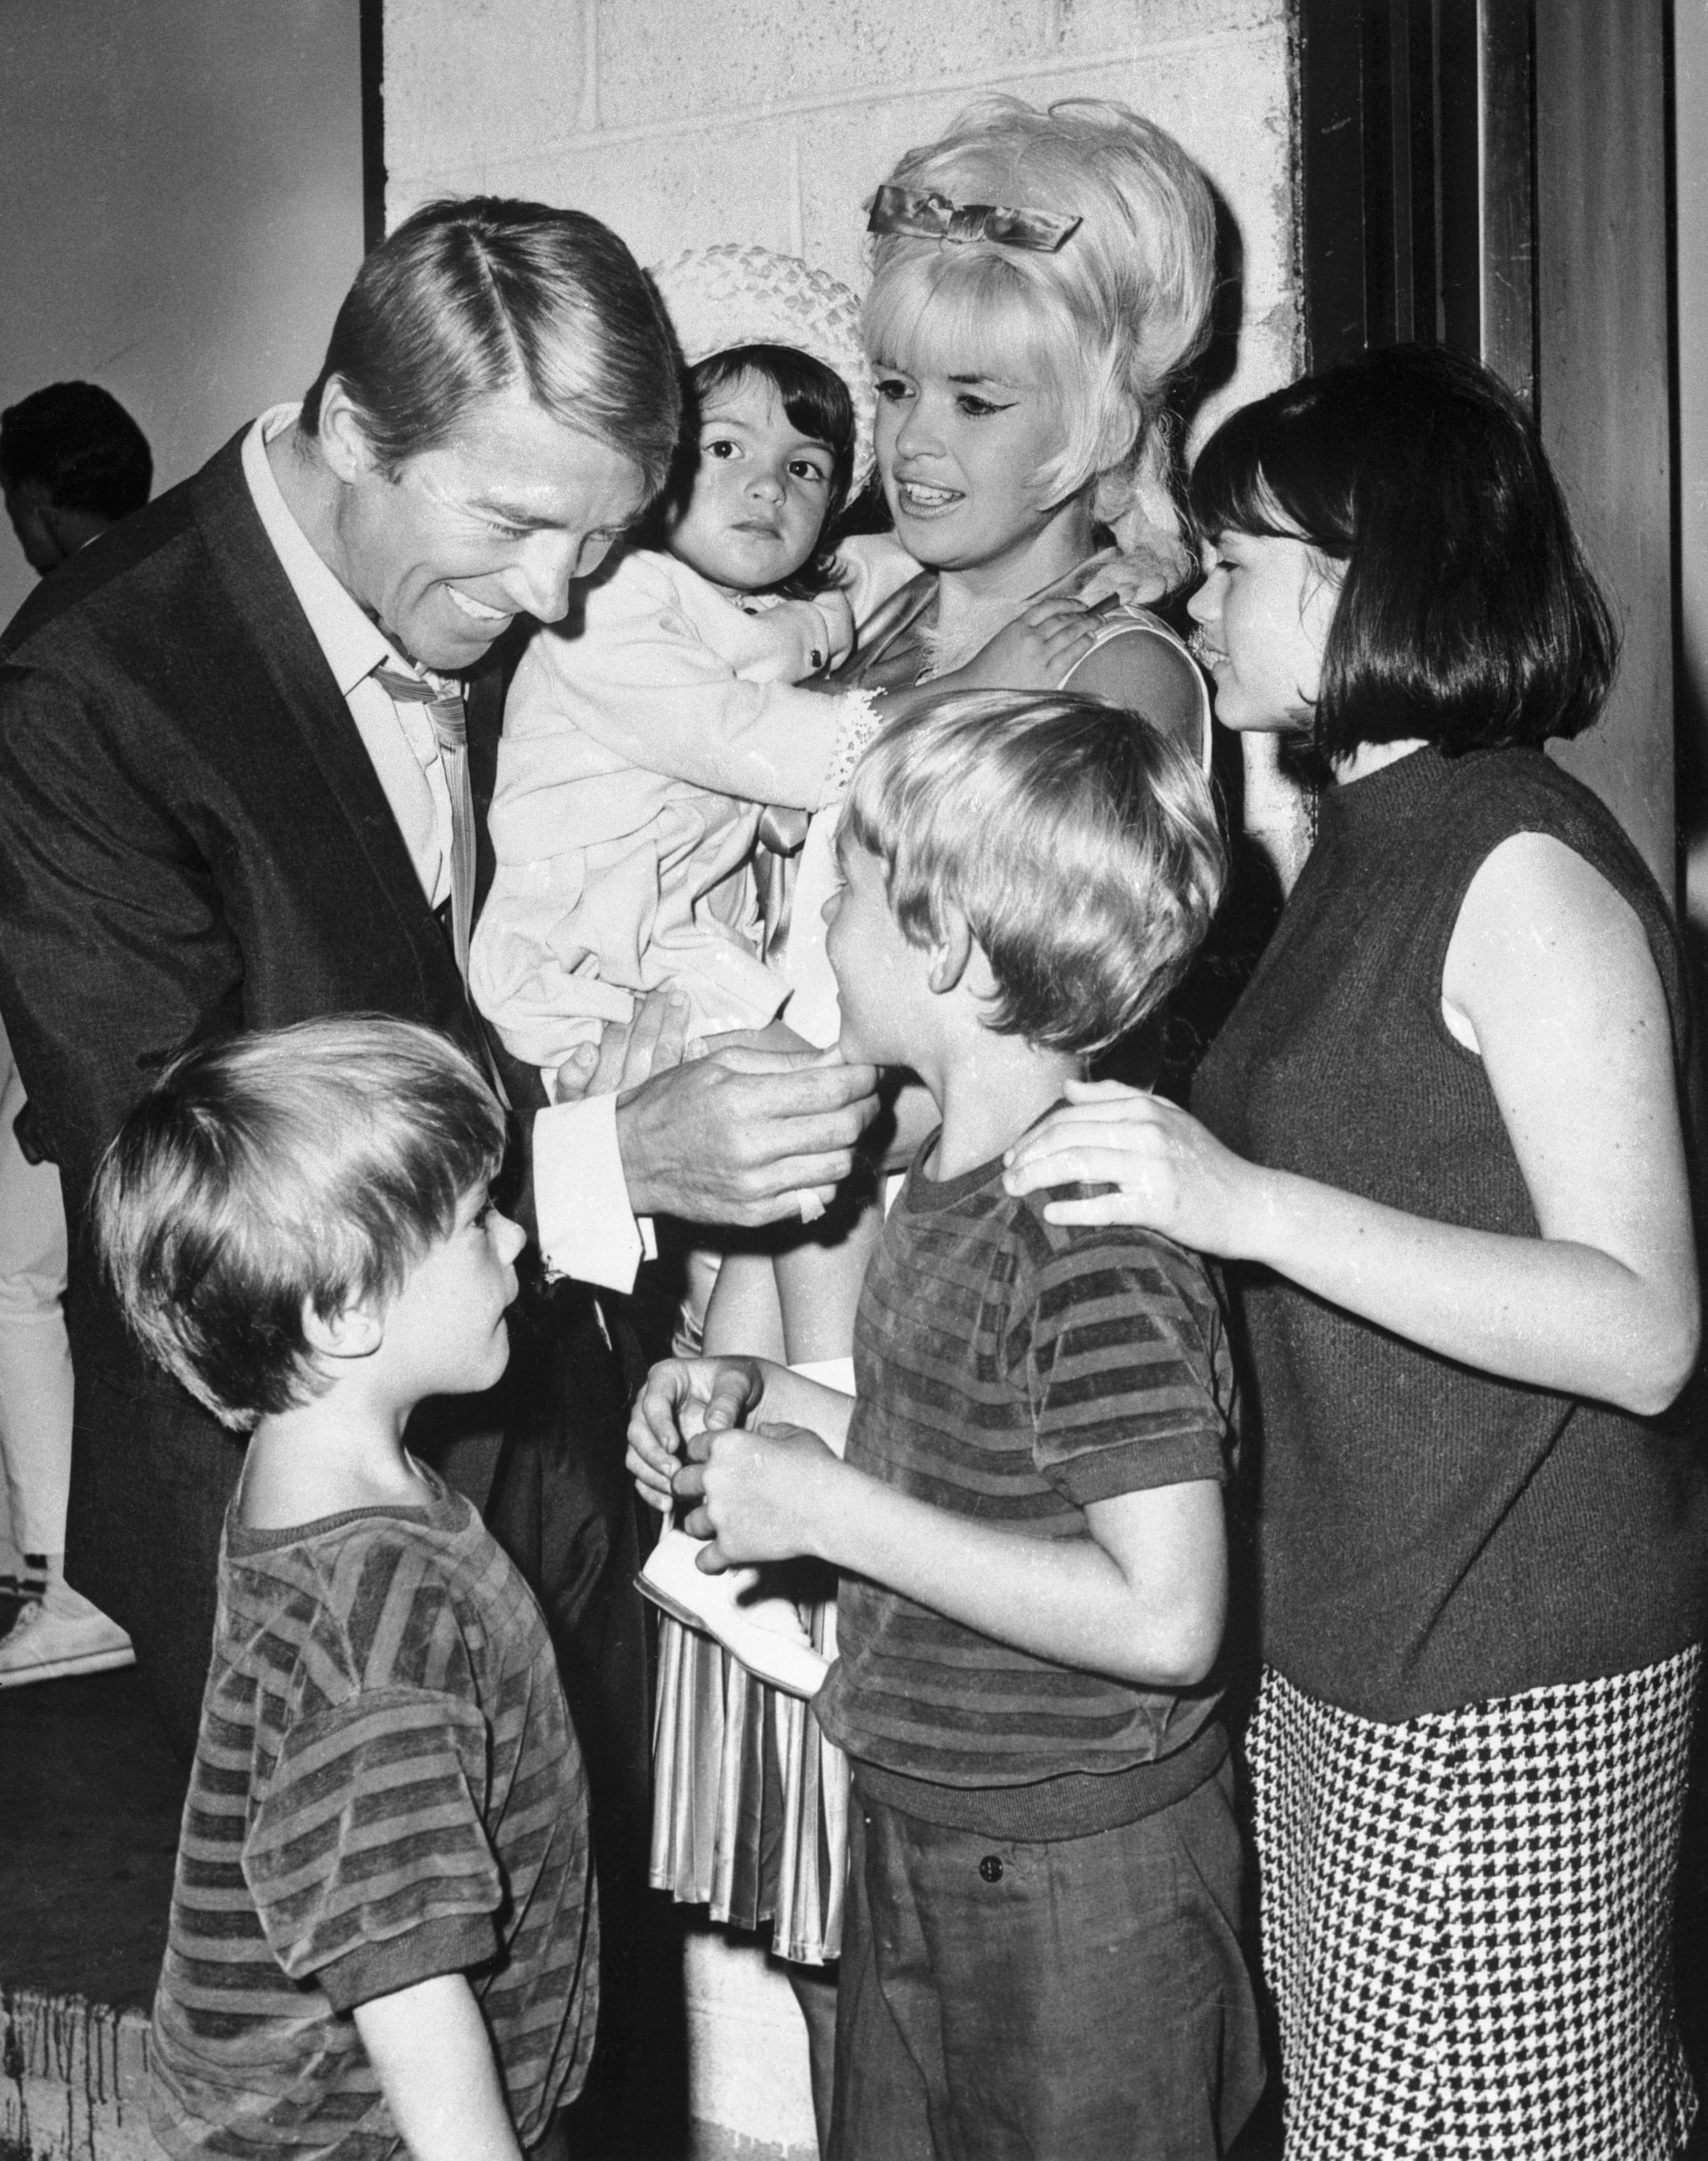 (Original Caption) Actor Mickey Hargitay is obviously enjoying his reunion with his former wife, actress Jayne Mansfield, and their children July 19th, backstage at the Westbury, L. I. Music Fair, where Miss Mansfield opened in Gentlemen Prefer Blondes. Hargitay flew in from Rome to be with his former wife, who was separated form her present husband, producer Matt Cimber, July 15th. The children are Zoltan, 5, Mikos, 7, and Mariska 2, and 14 year old Jayne Maria, Miss Mansfield's daughter by a previous marriage.